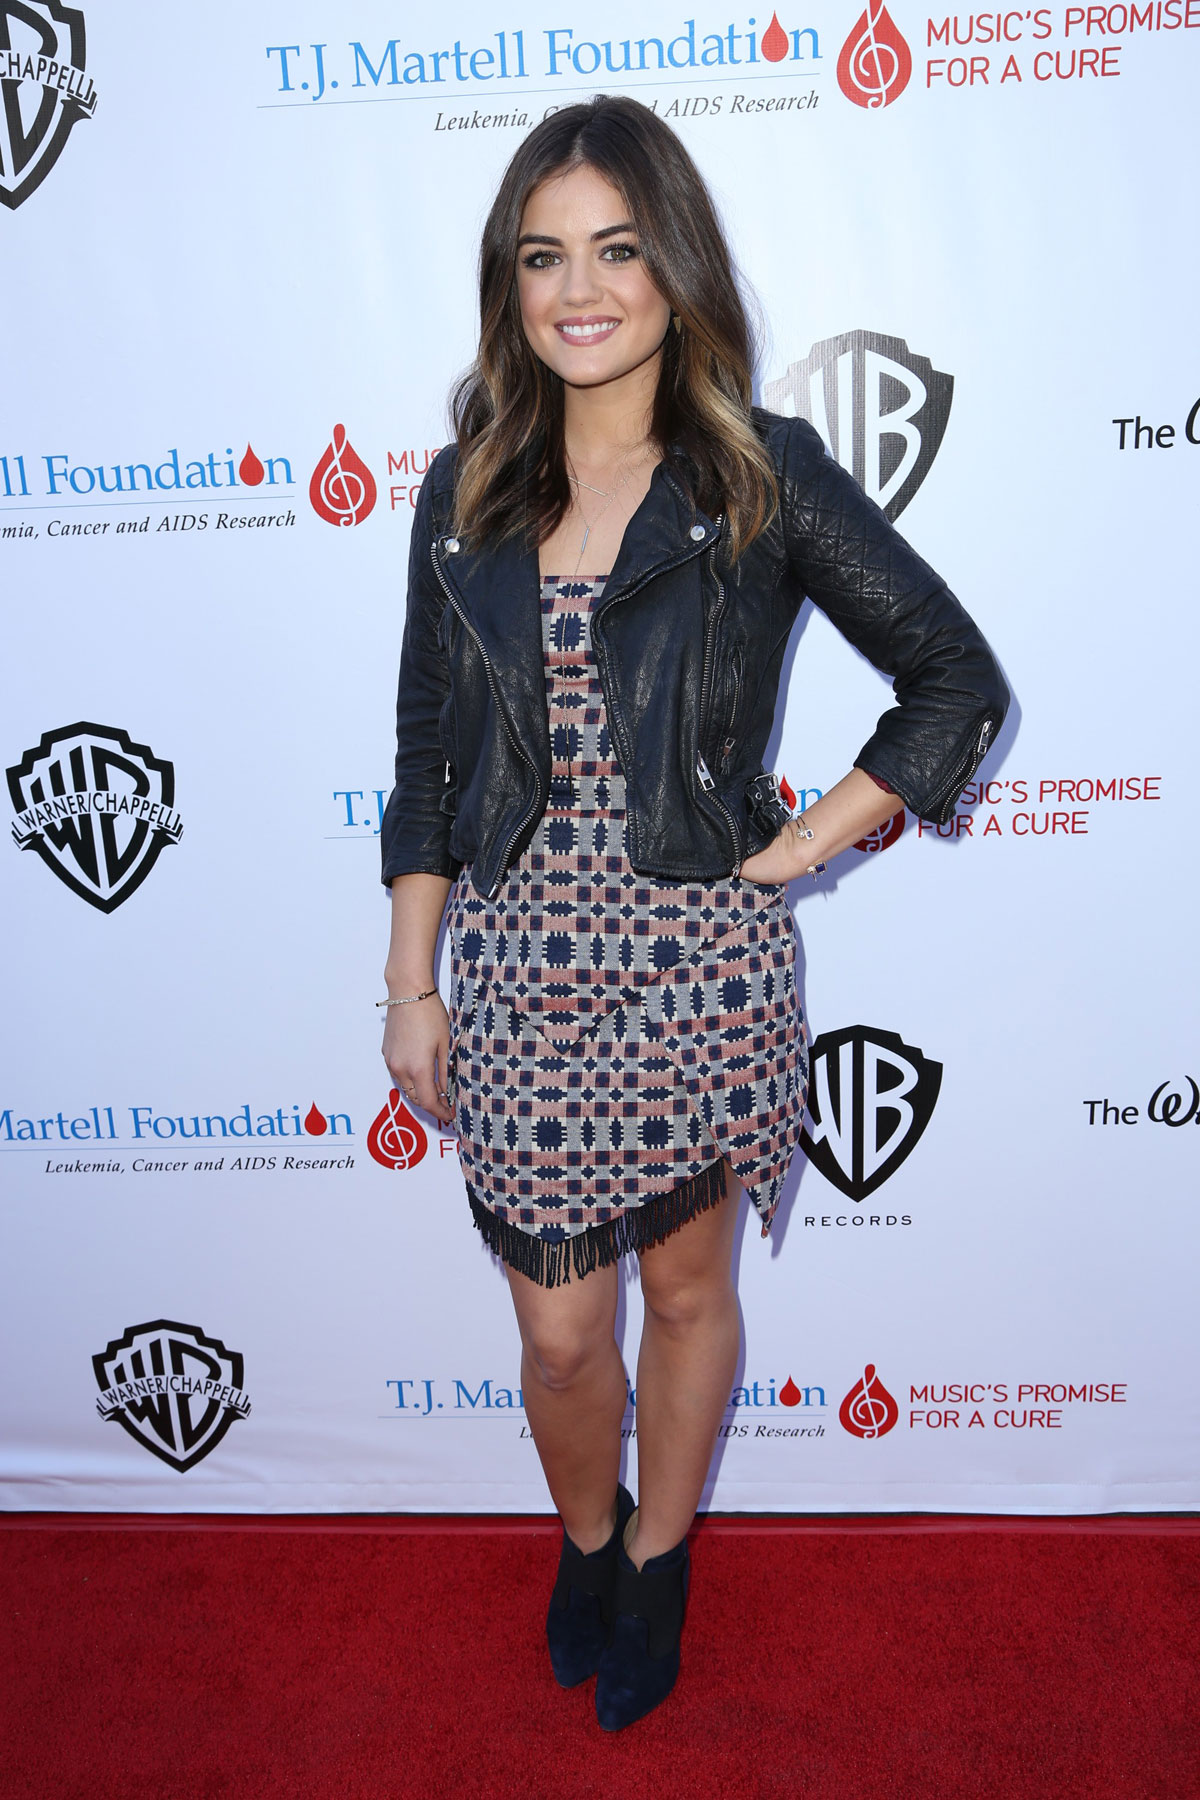 Lucy Hale attends TJ Martell Foundation Family Day